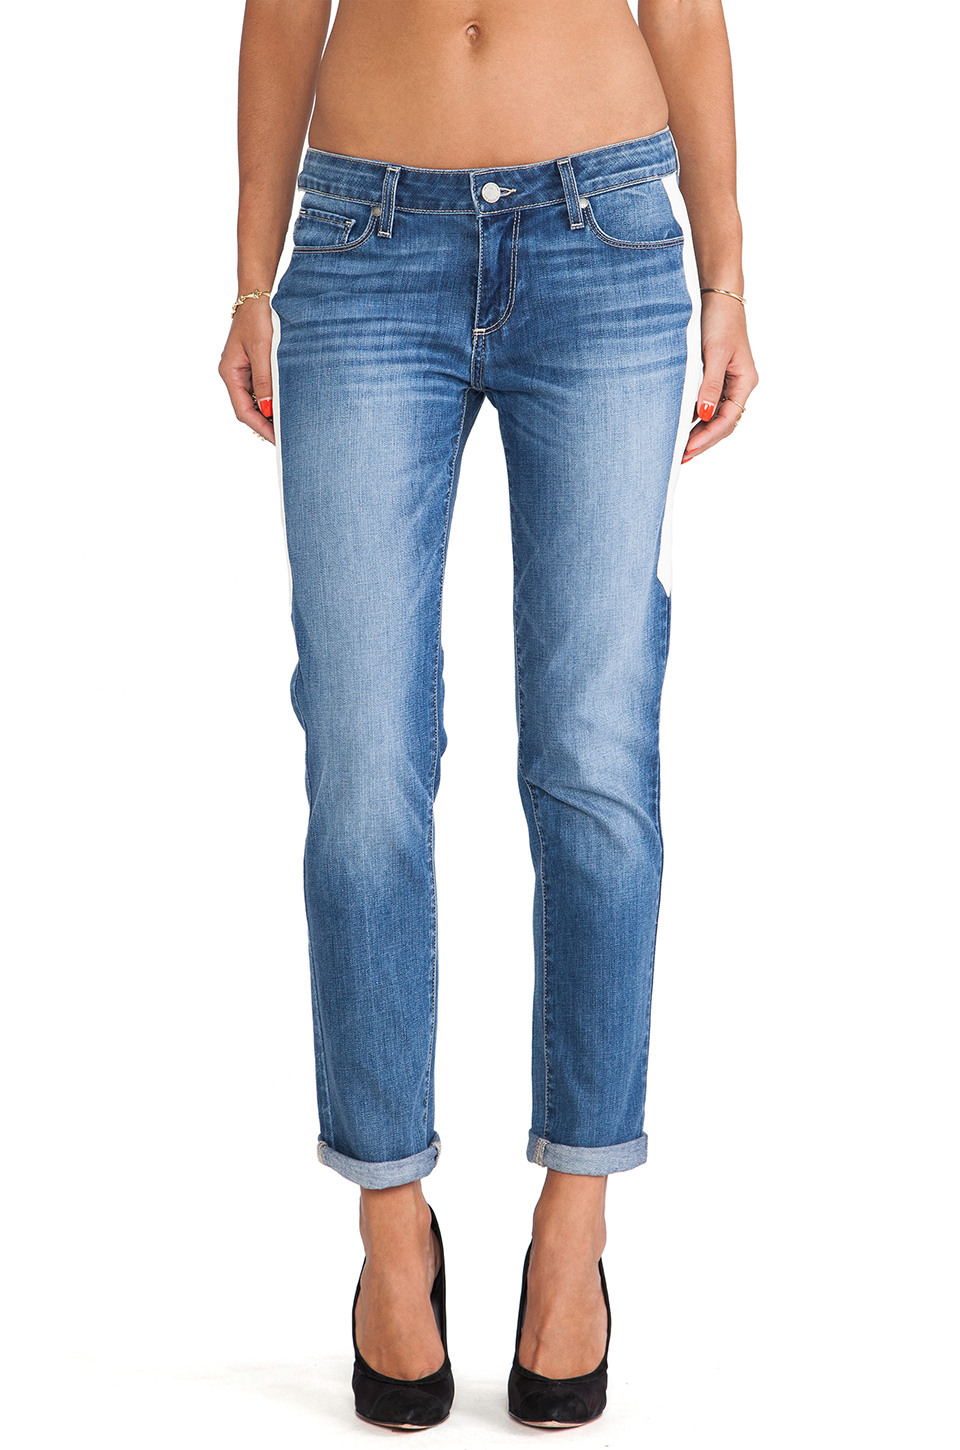 Paige Denim Jimmy Jimmy Skinny in Indigo Dart from REVOLVEclothing.com